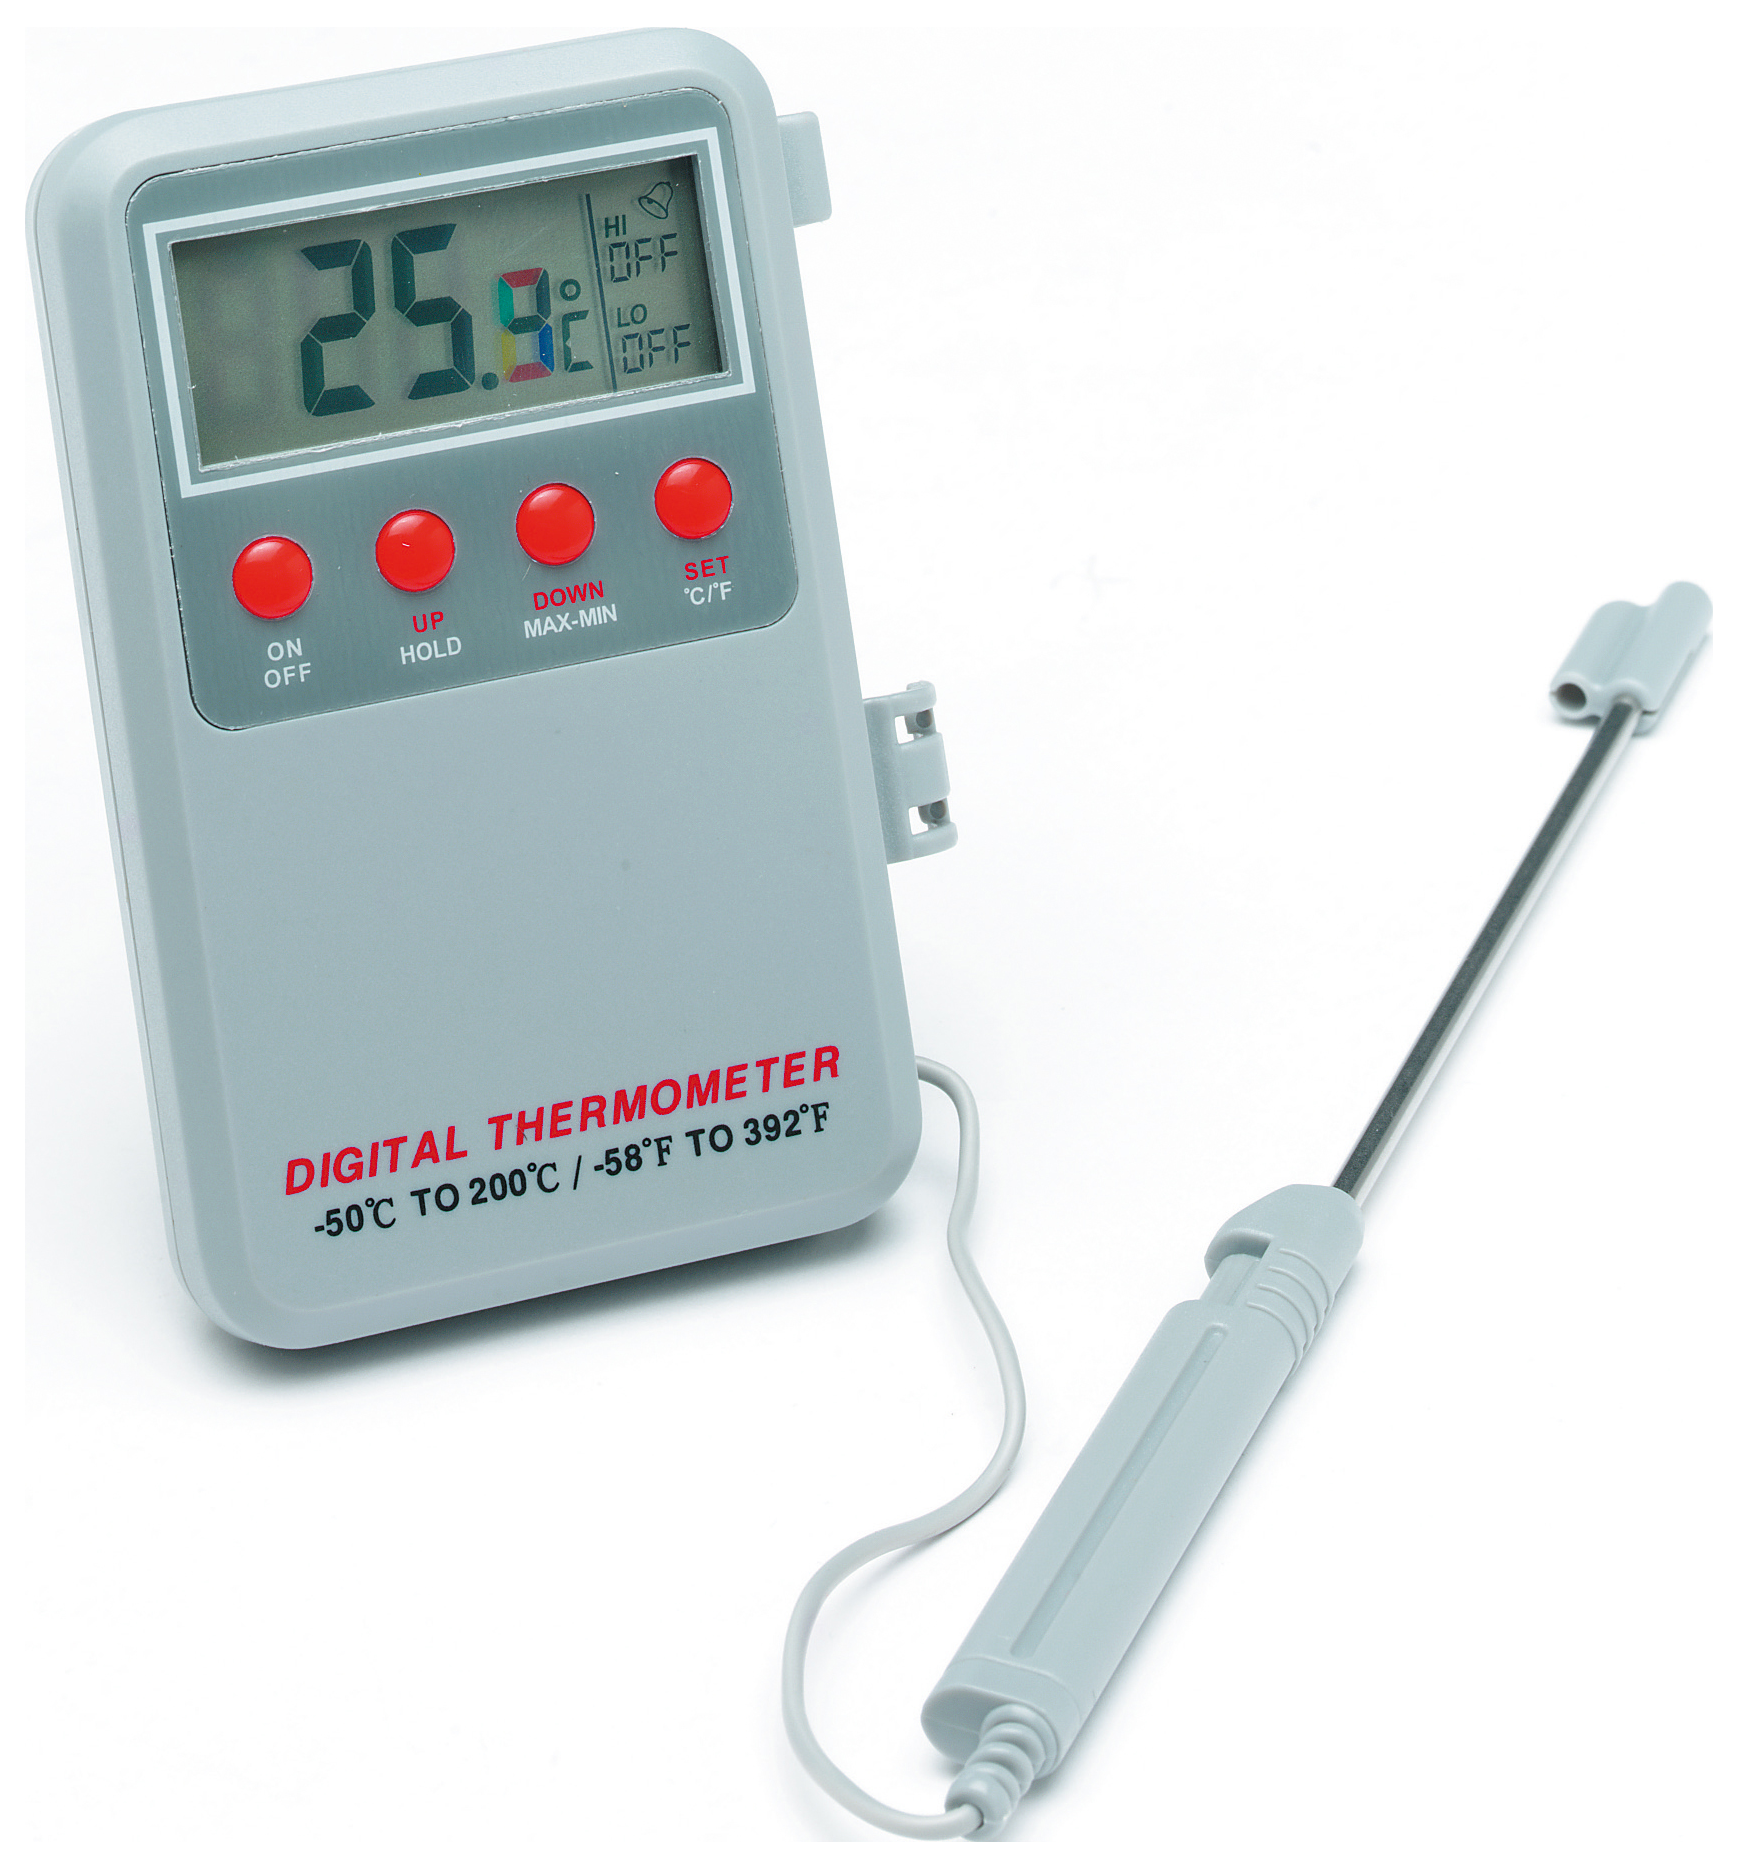 Rothen 67039 Digital Thermometer